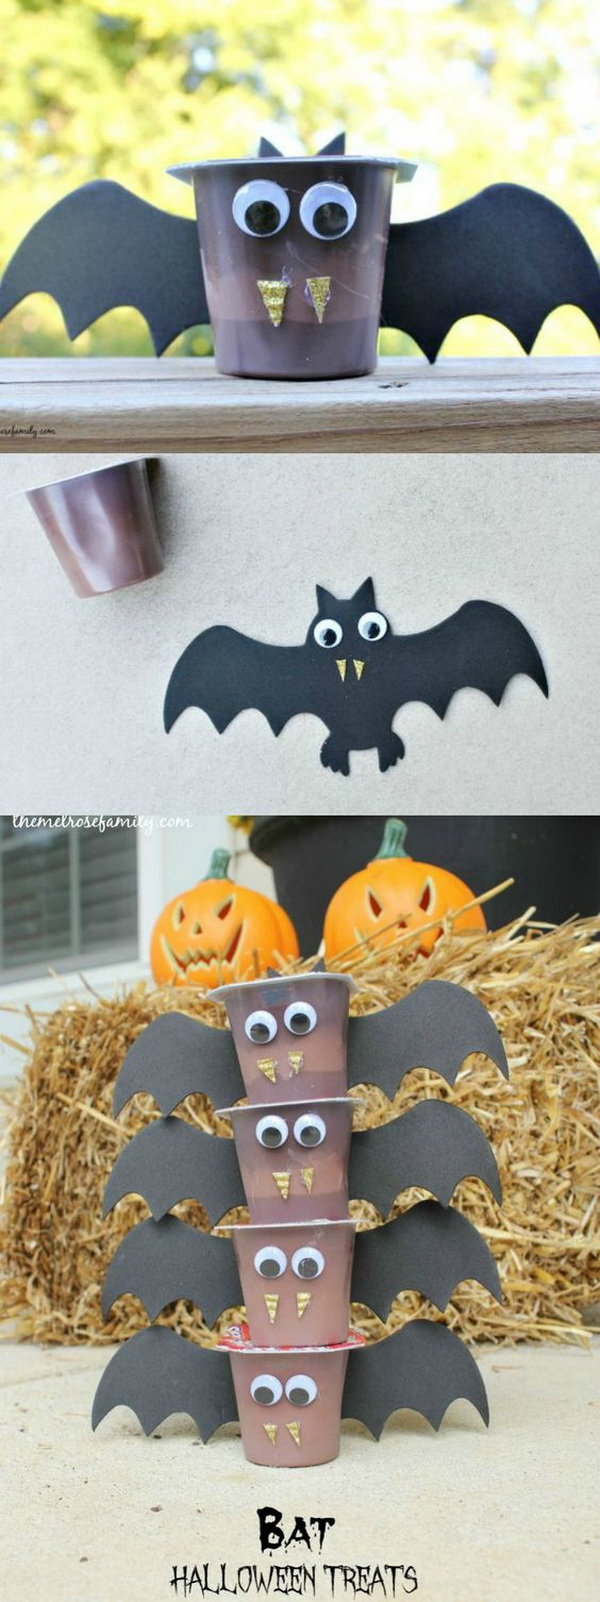 Bat Halloween Treats. An adorable, fun snack idea for kids this Halloween.